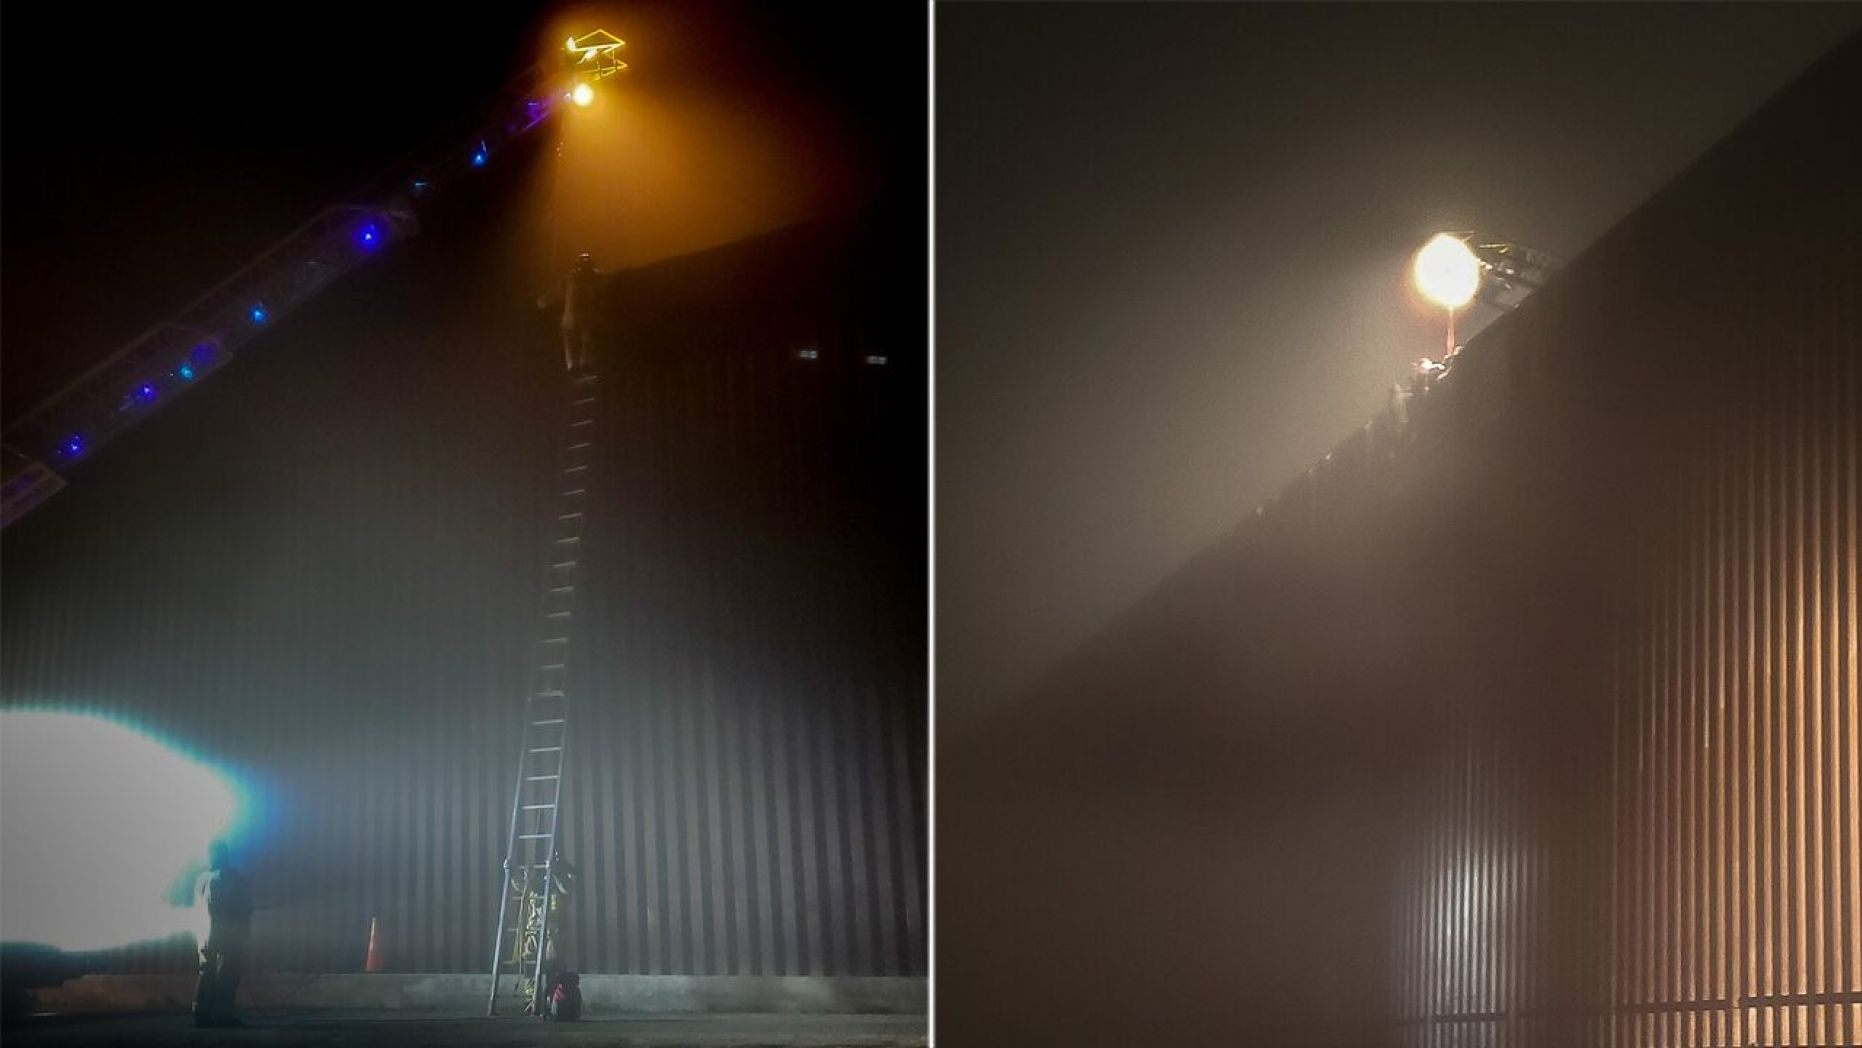 Three people were stuck on top of the new border wall around midnight on Sunday in San Diego.